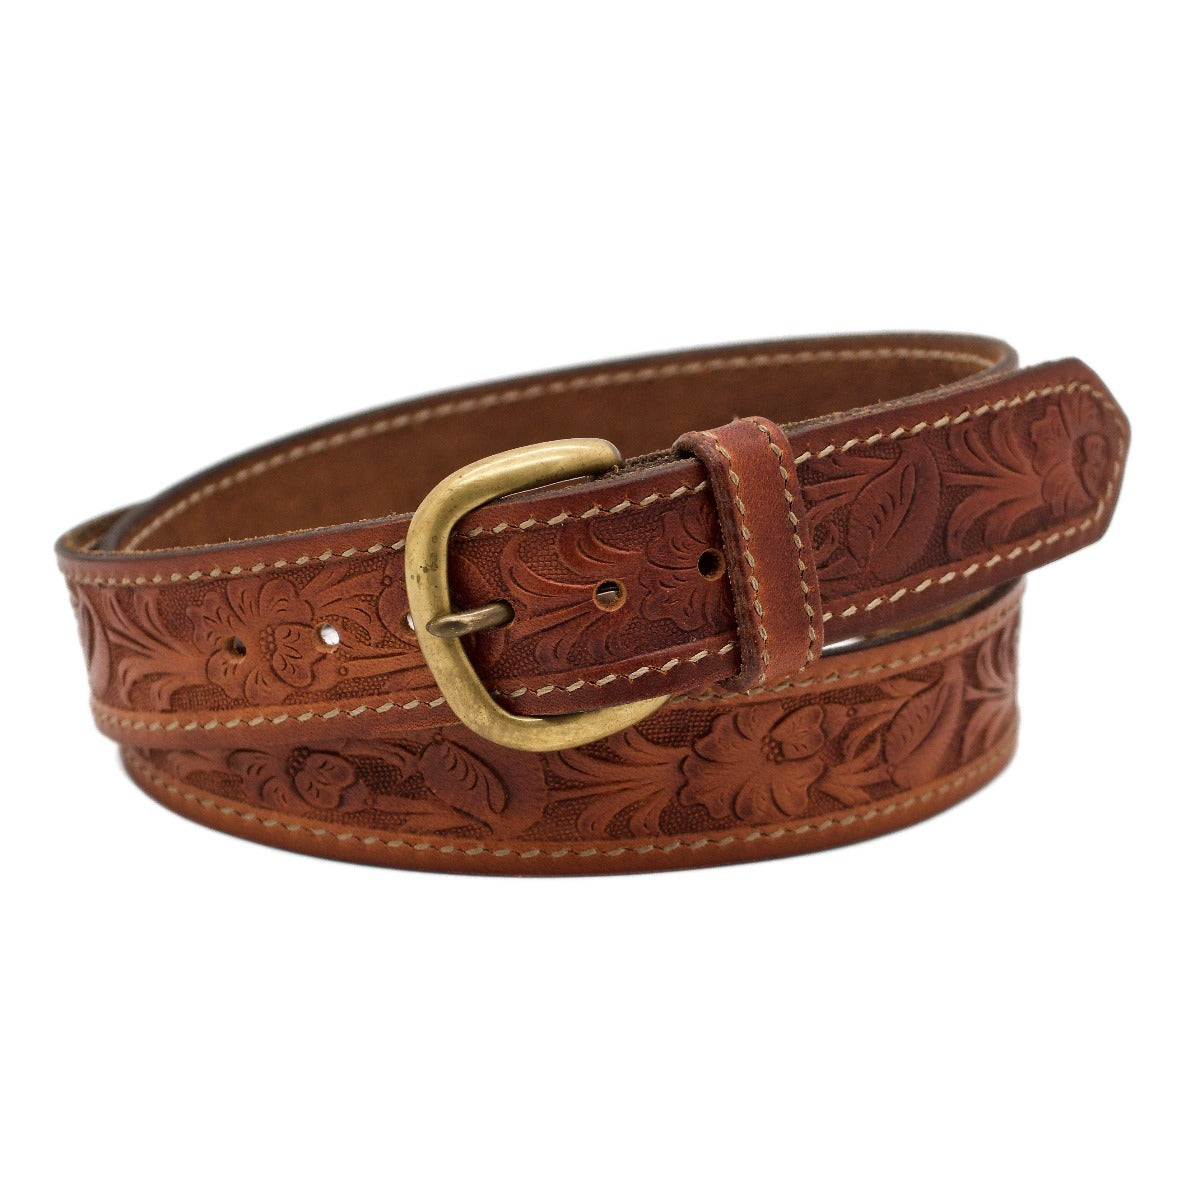 The Santa Anita Western Leather Belt